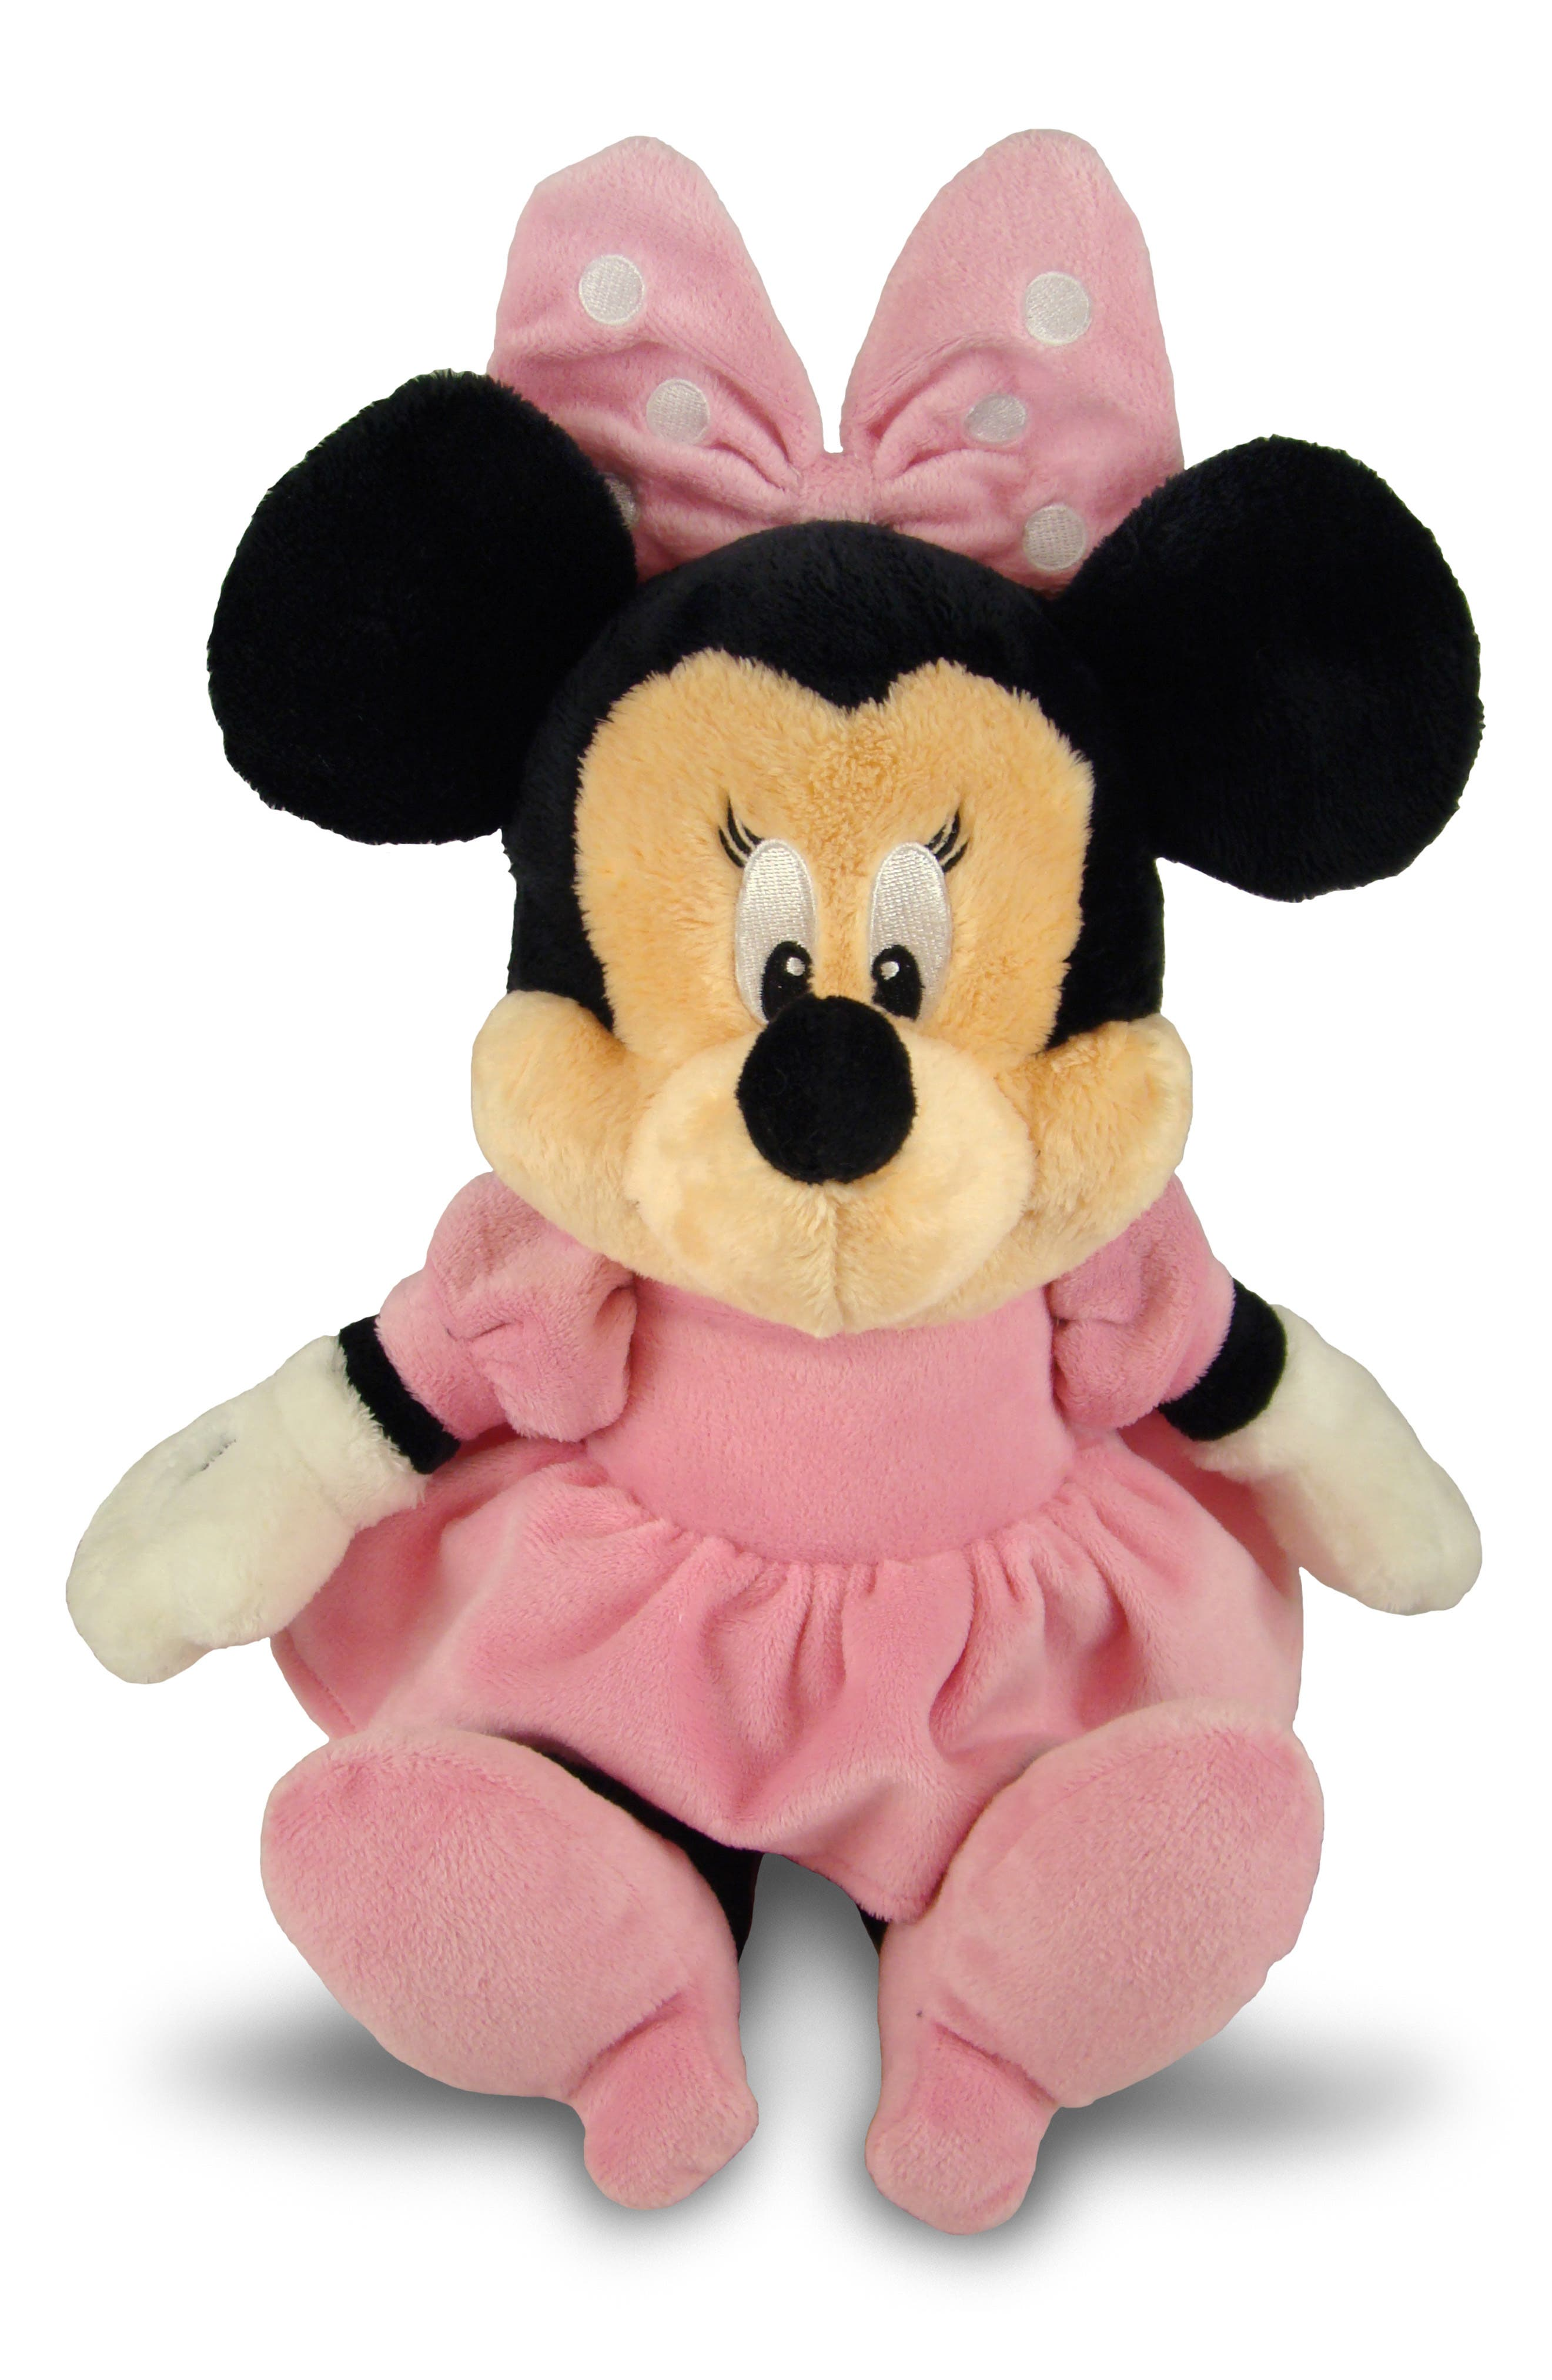 Minnie Mouse Plush Toy,                             Main thumbnail 1, color,                             PINK